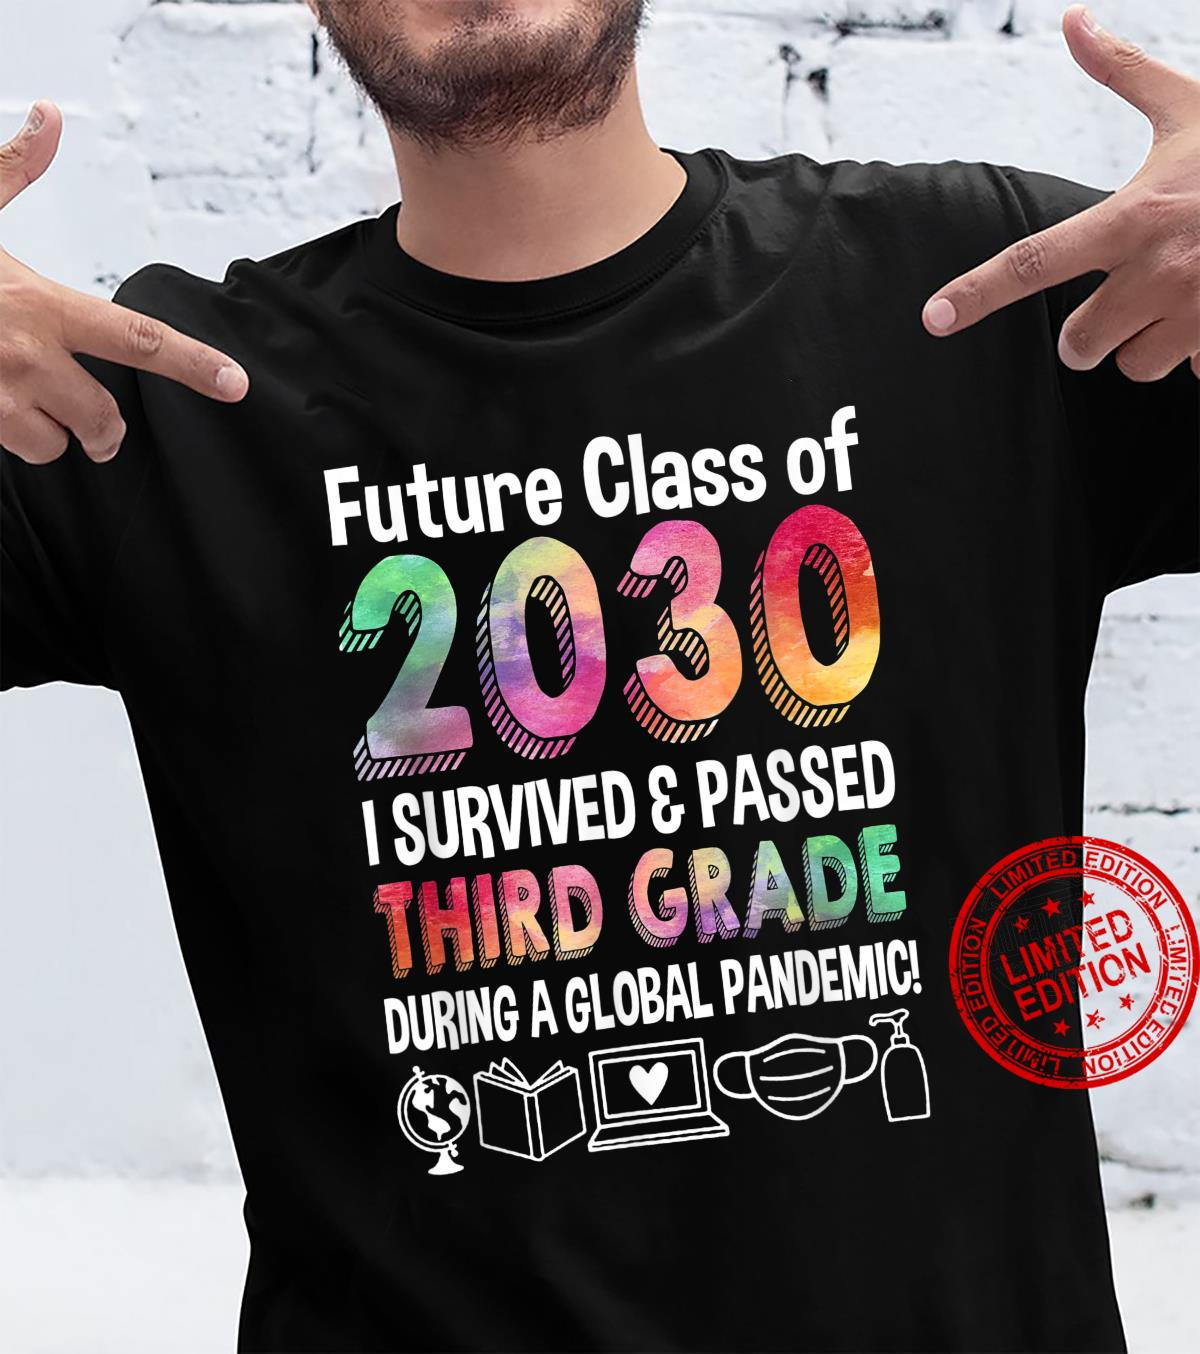 Future Class Of 2030 I Survived & Passed Third Grade Shirt